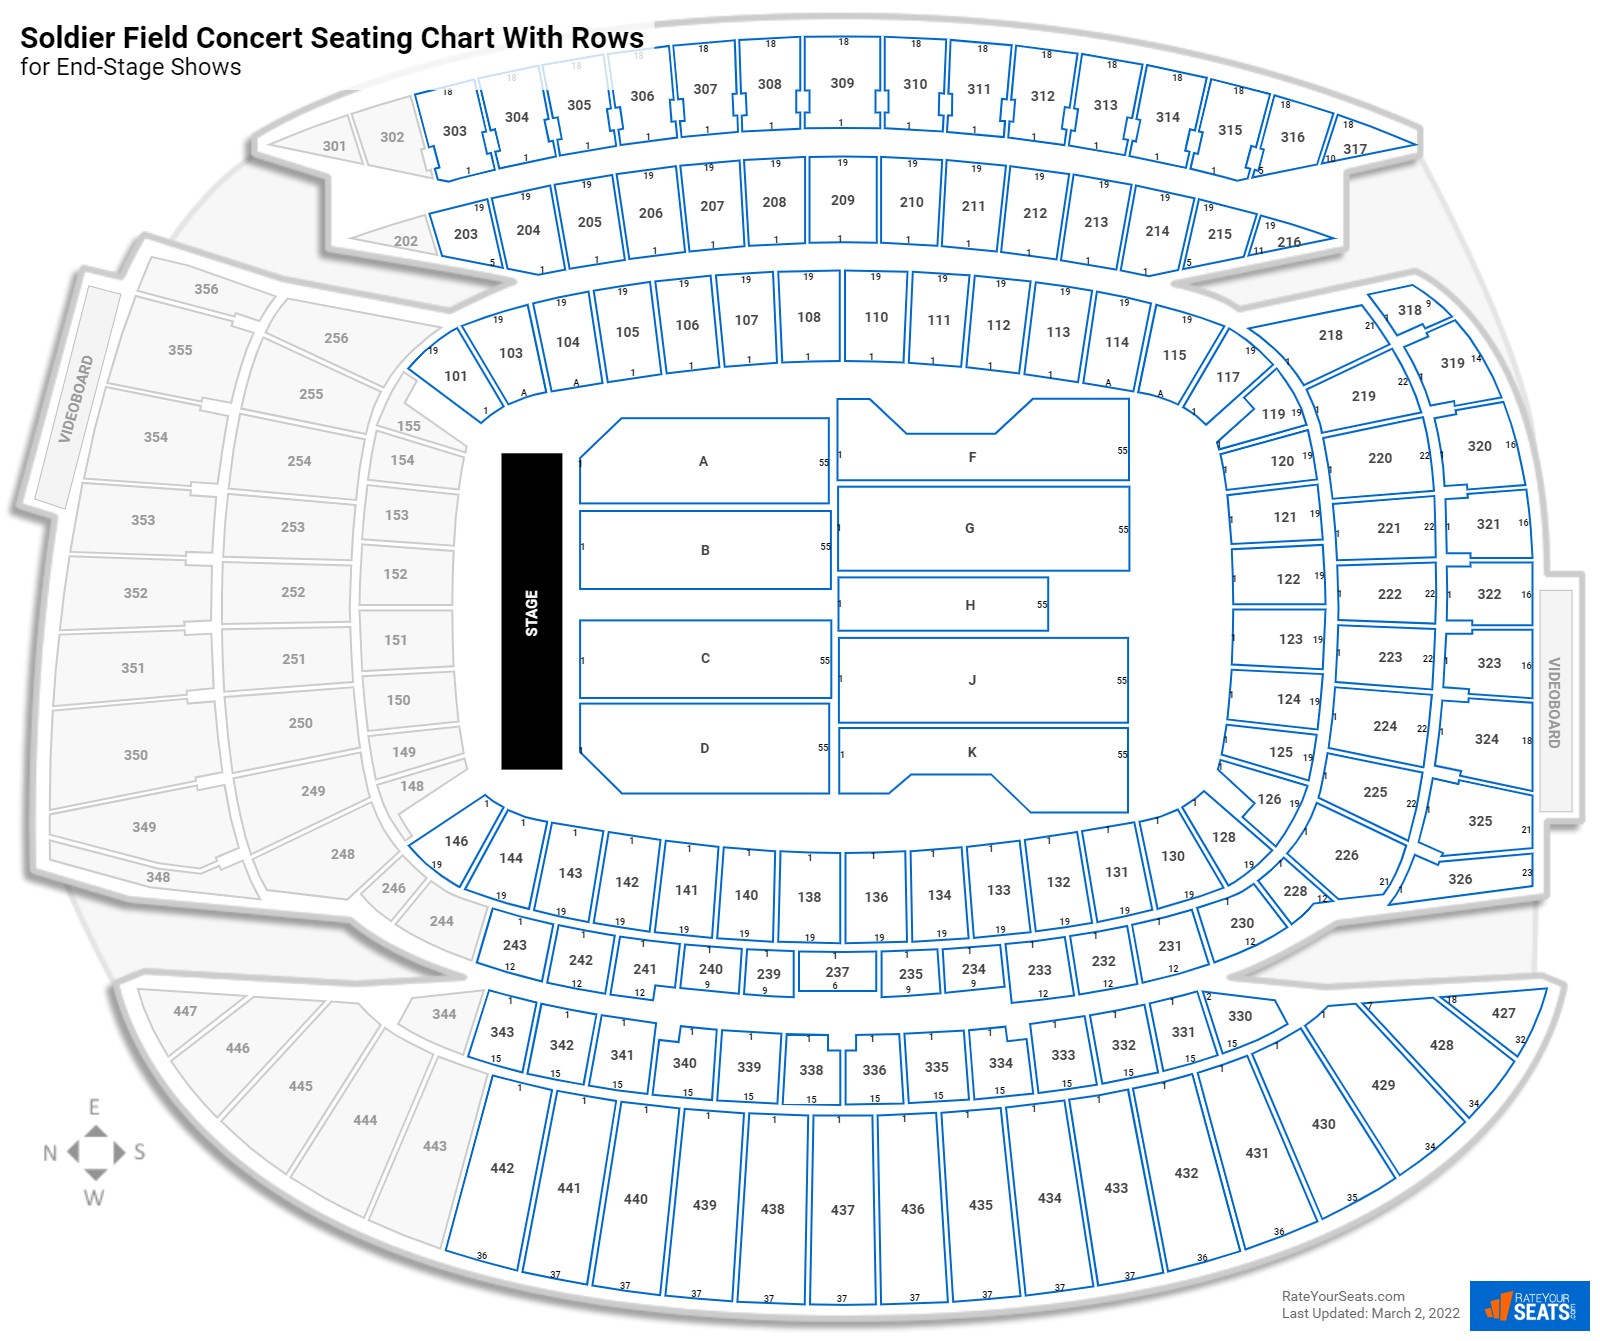 Soldier Field seating chart with rows concert